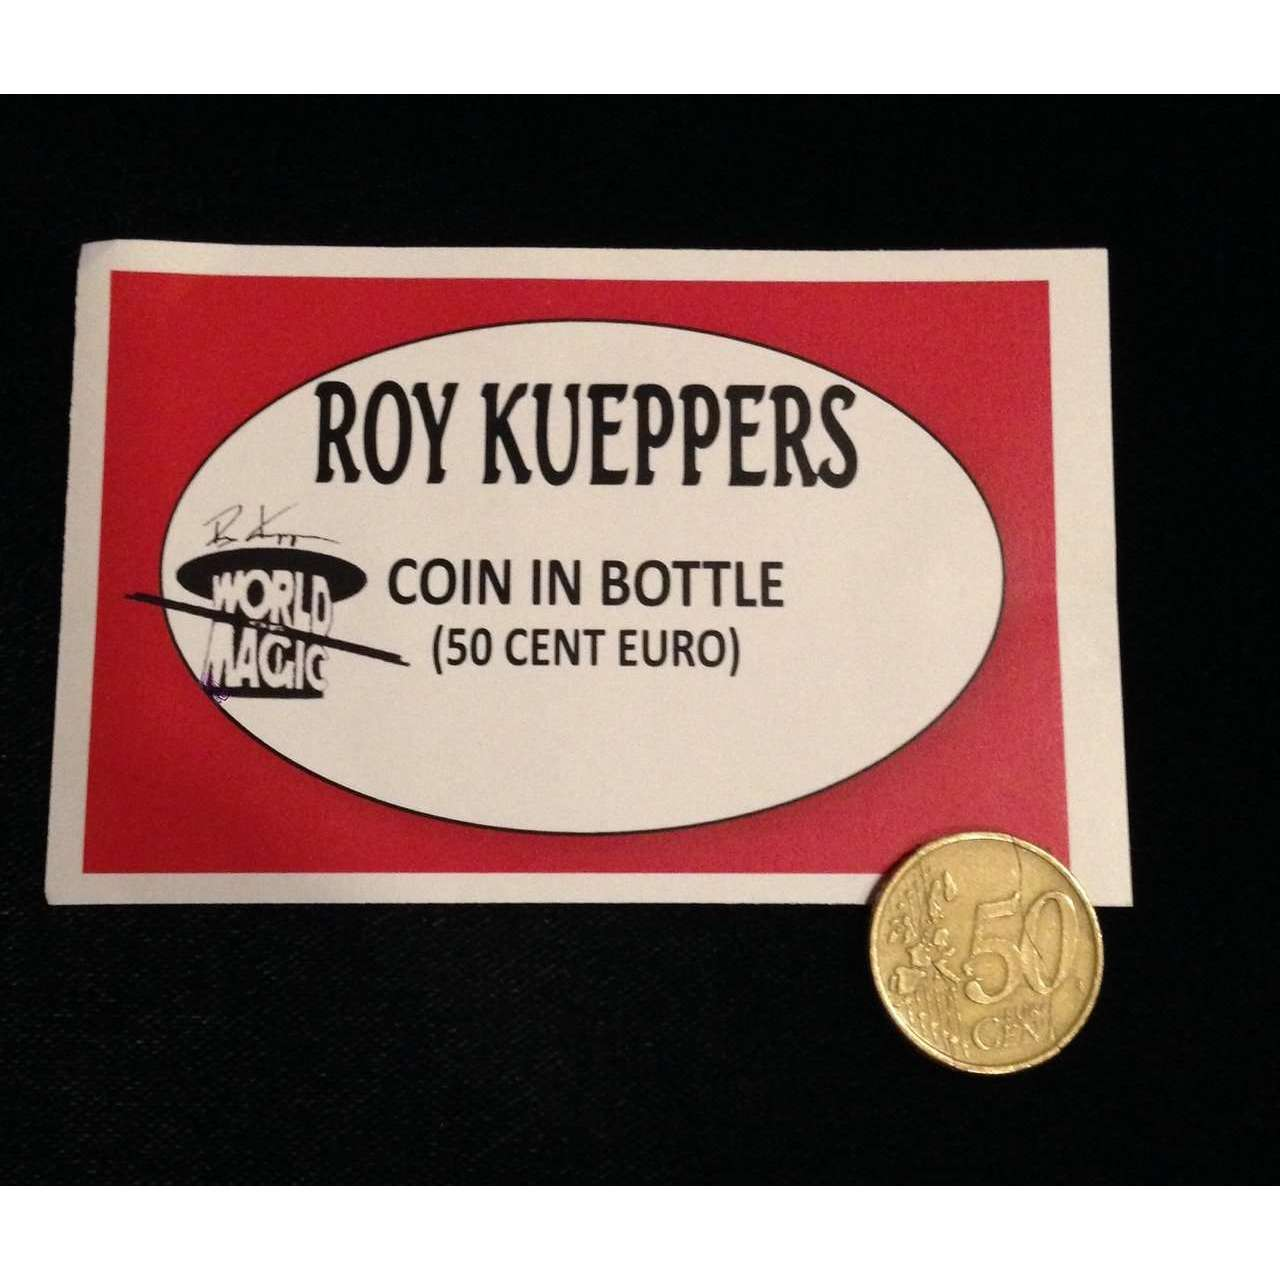 Roy Kueppers Coin in Bottle (50 Cent Euro)